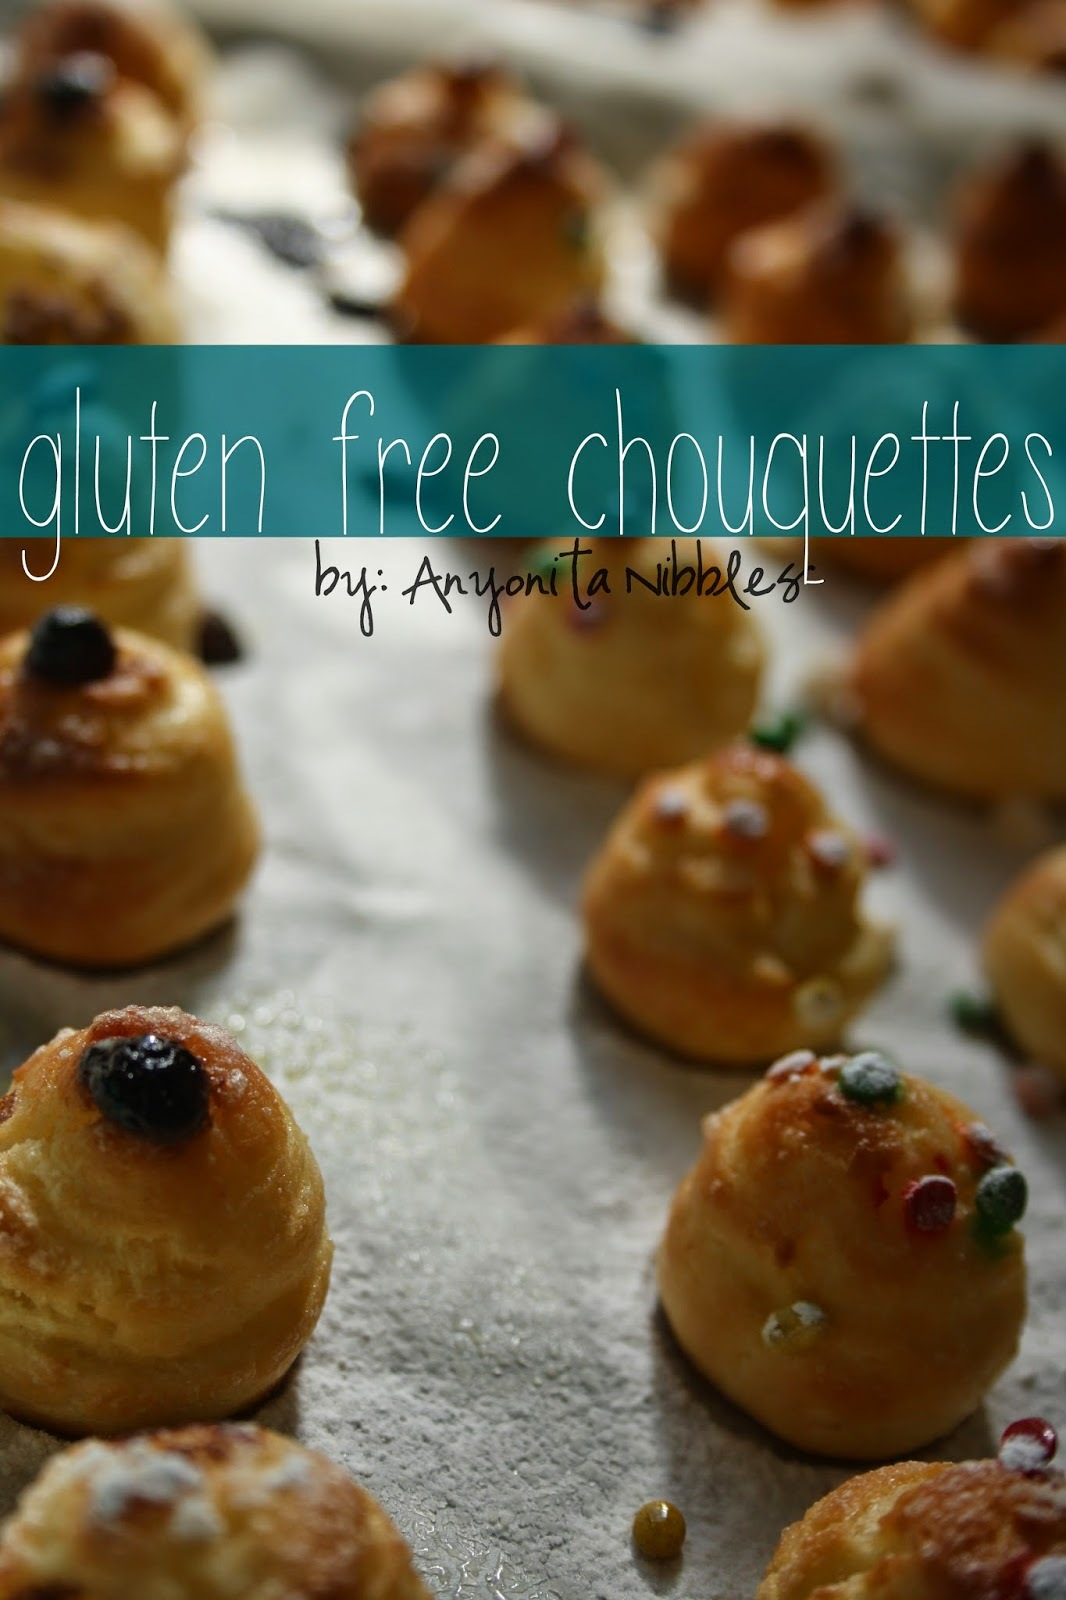 Gluten Free Chouquettes Three Ways